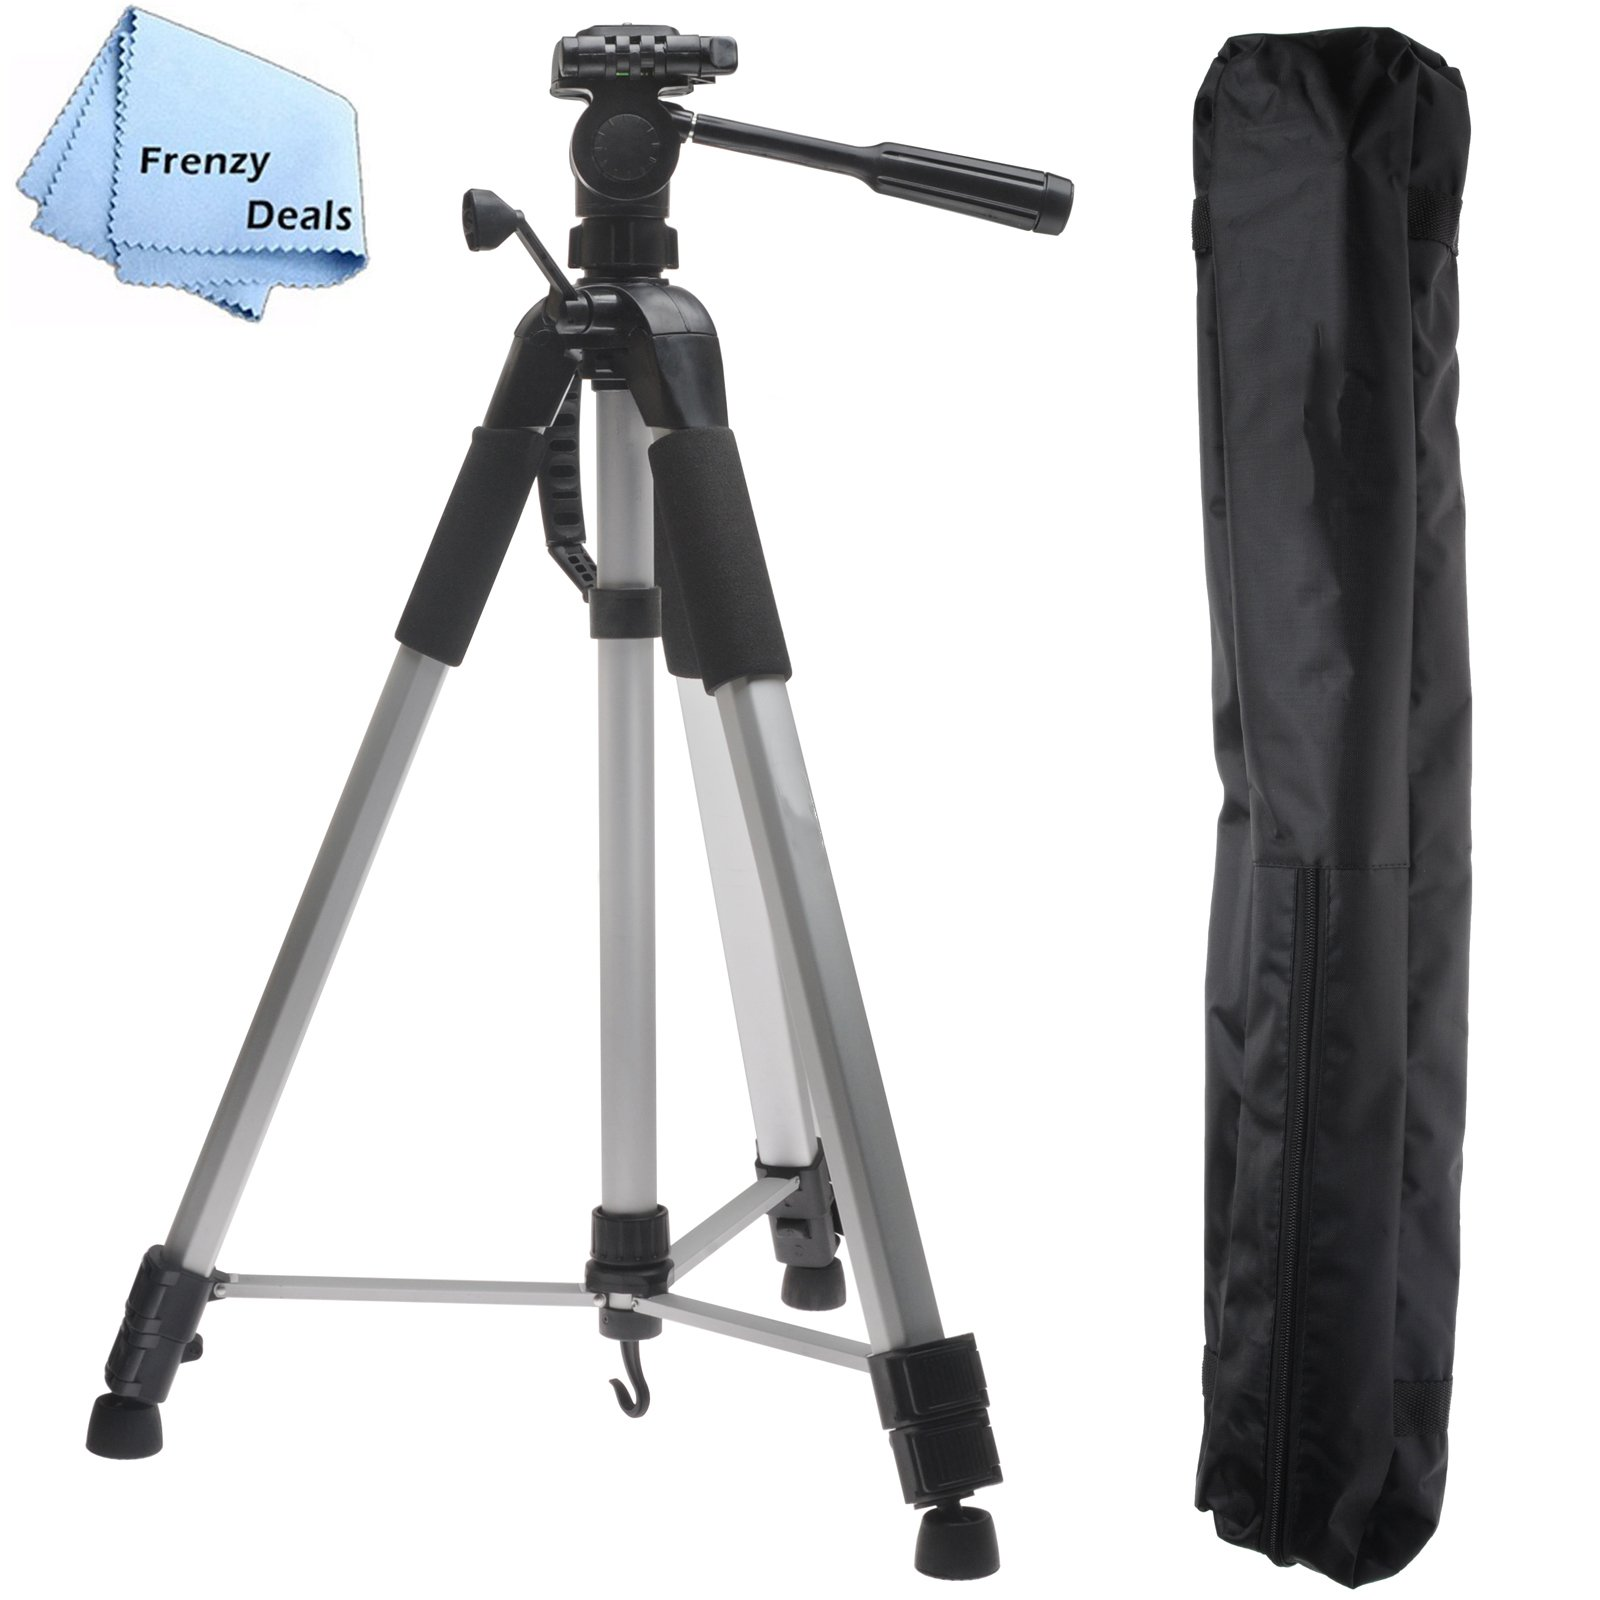 72'' Inch Heavy Duty Performance Tripod for all DSLR Cameras & Camcorders + FrenzyDeals Microfiber Cloth